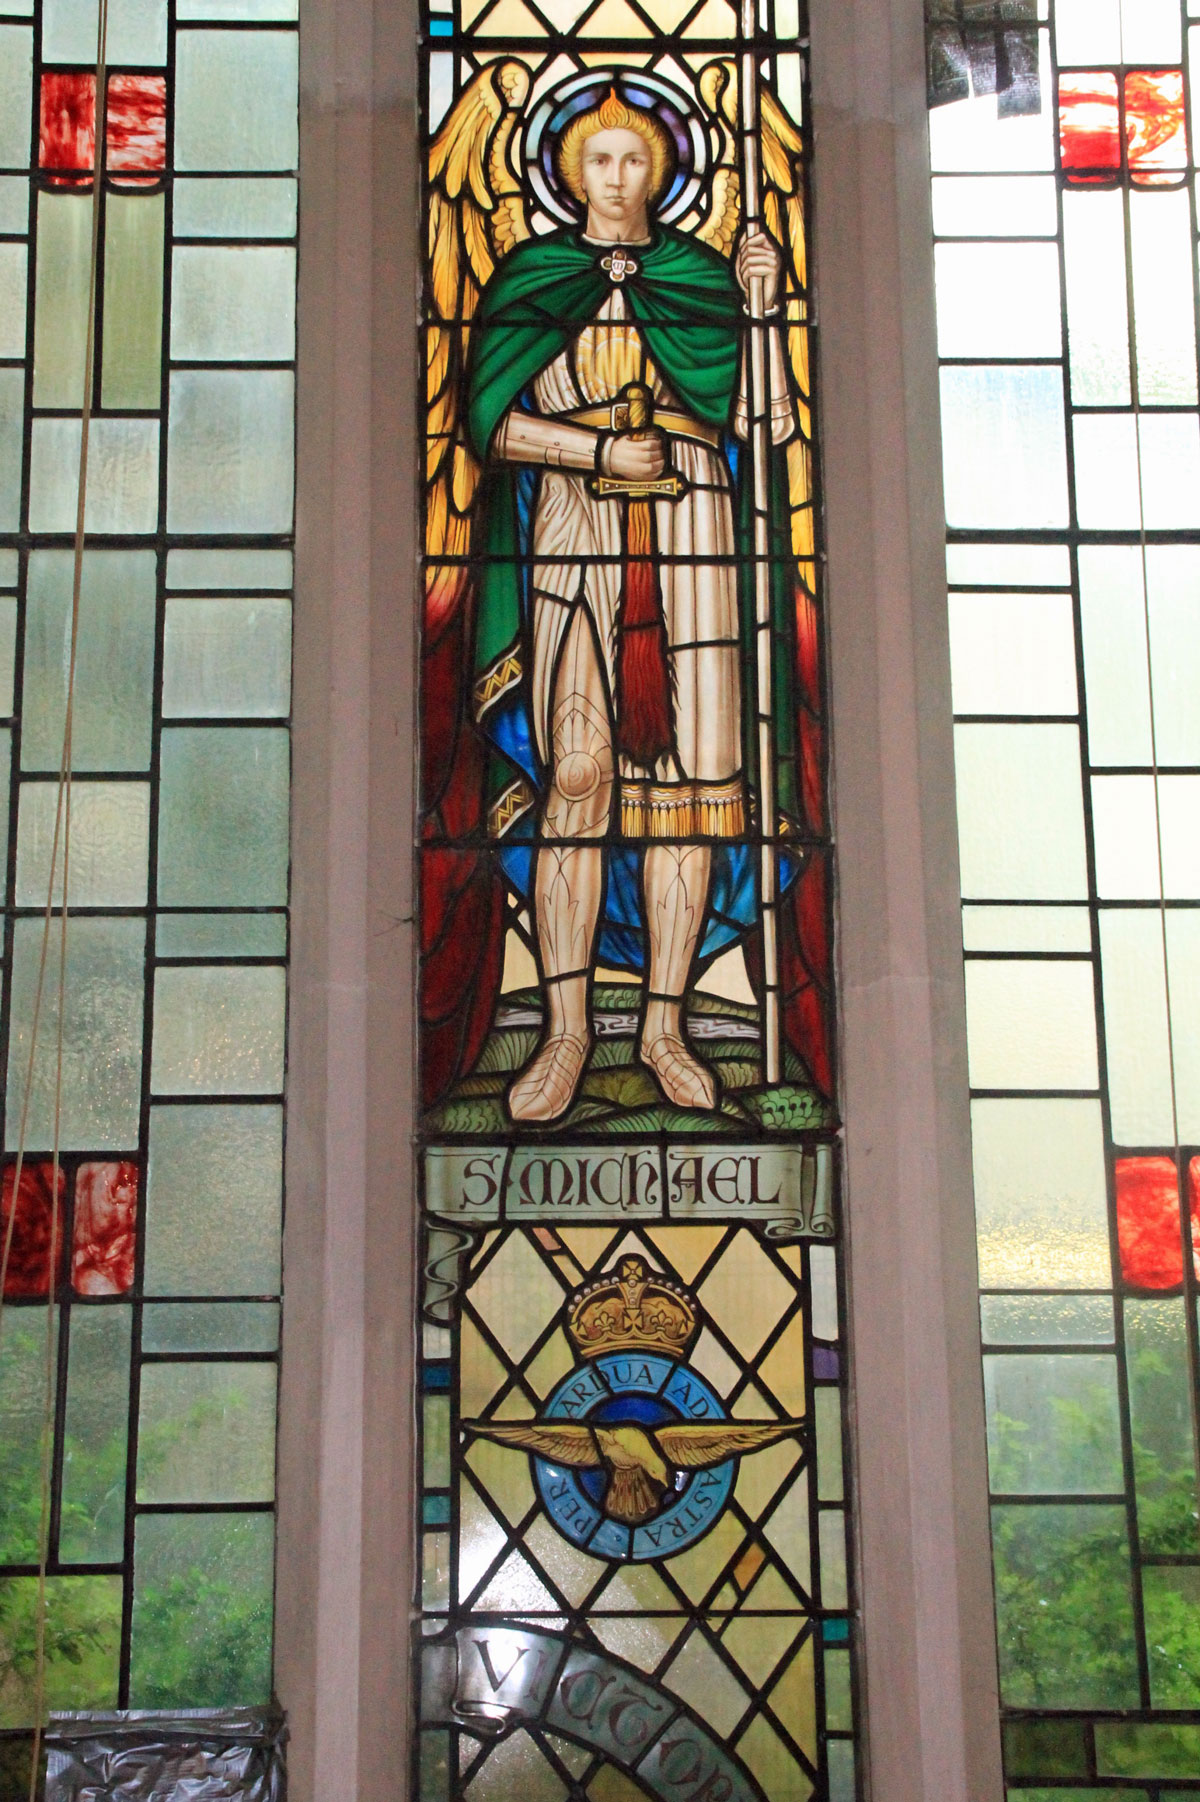 St Michael window at Acton Hill Church